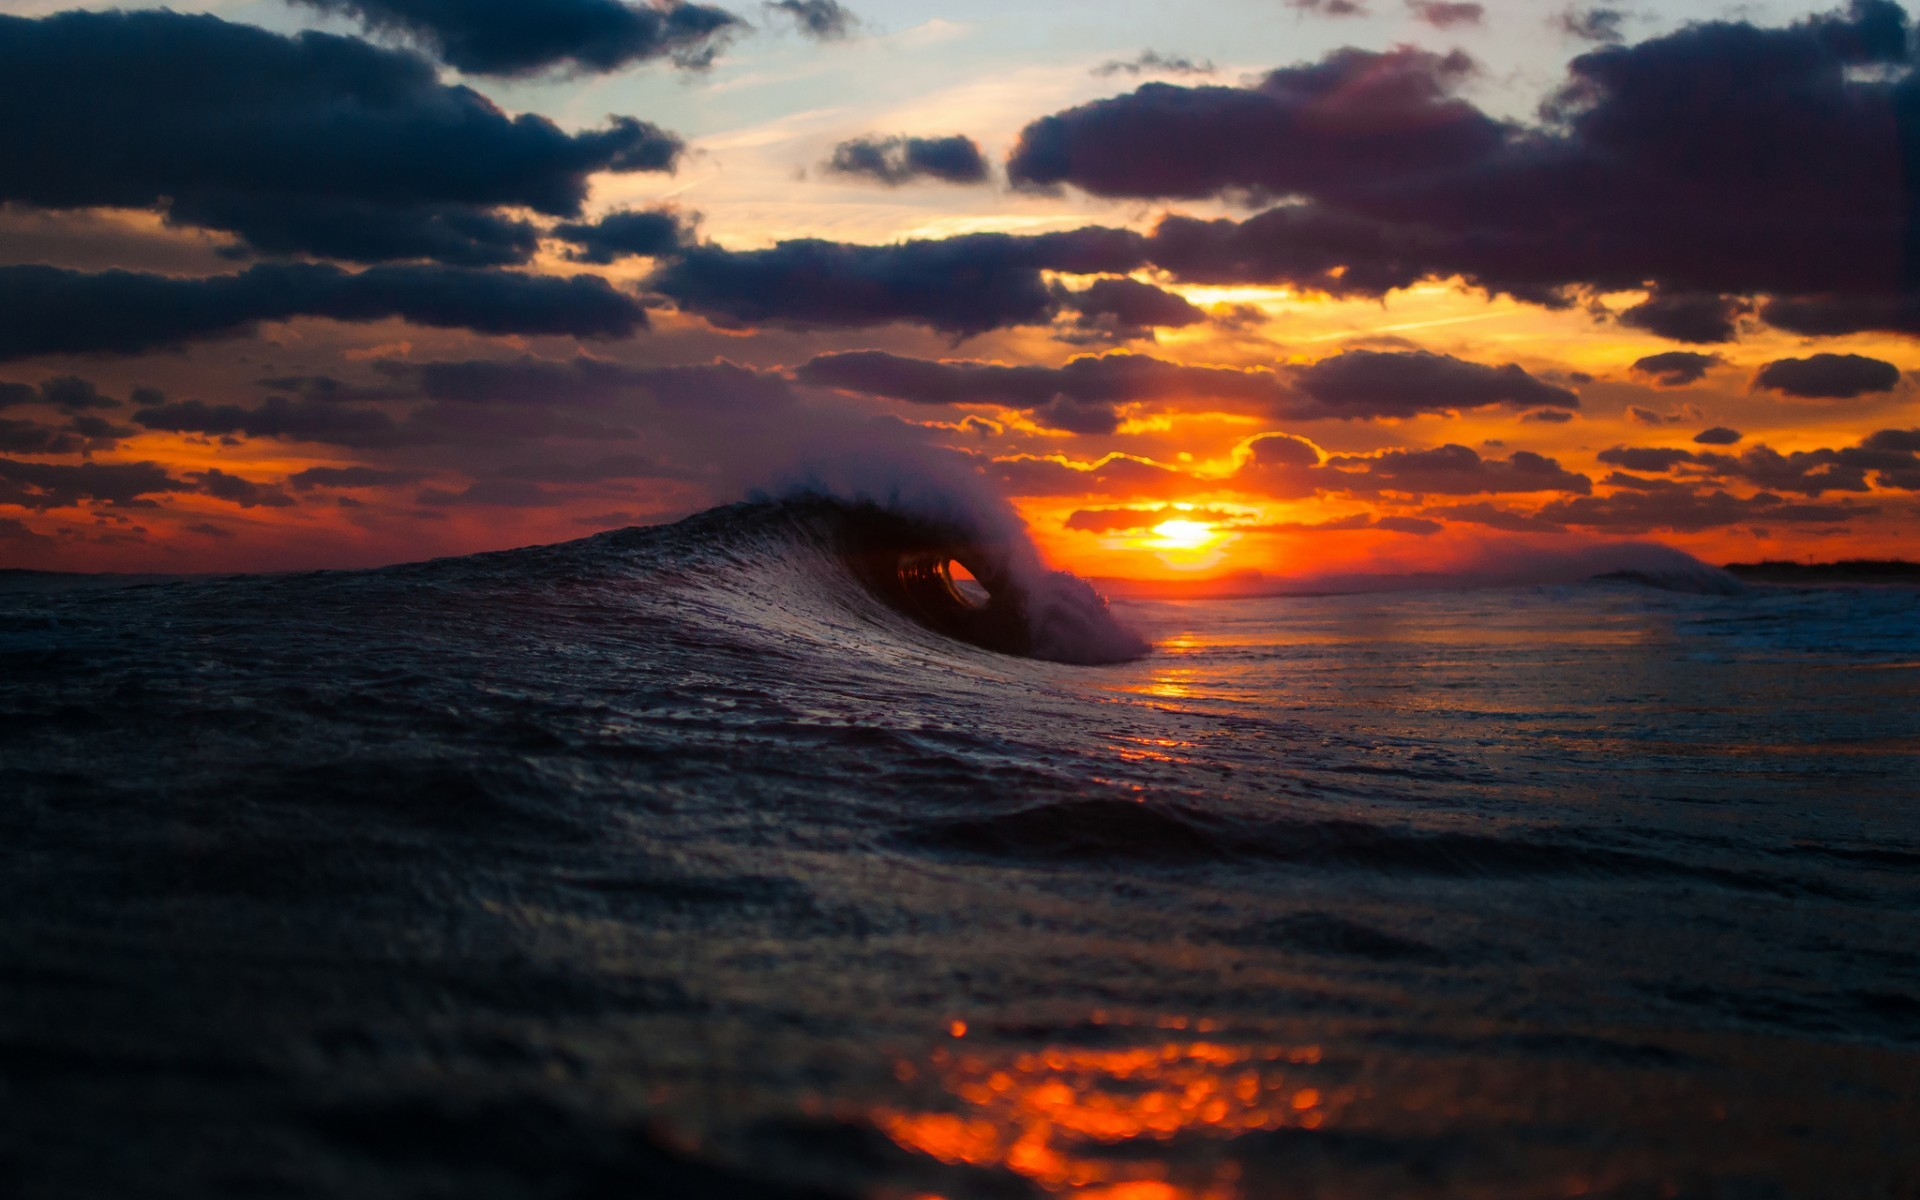 1920x1200 Ocean sea waves sunset sunrise sky clouds spray splash drops wallpaper |   | 32253 | WallpaperUP